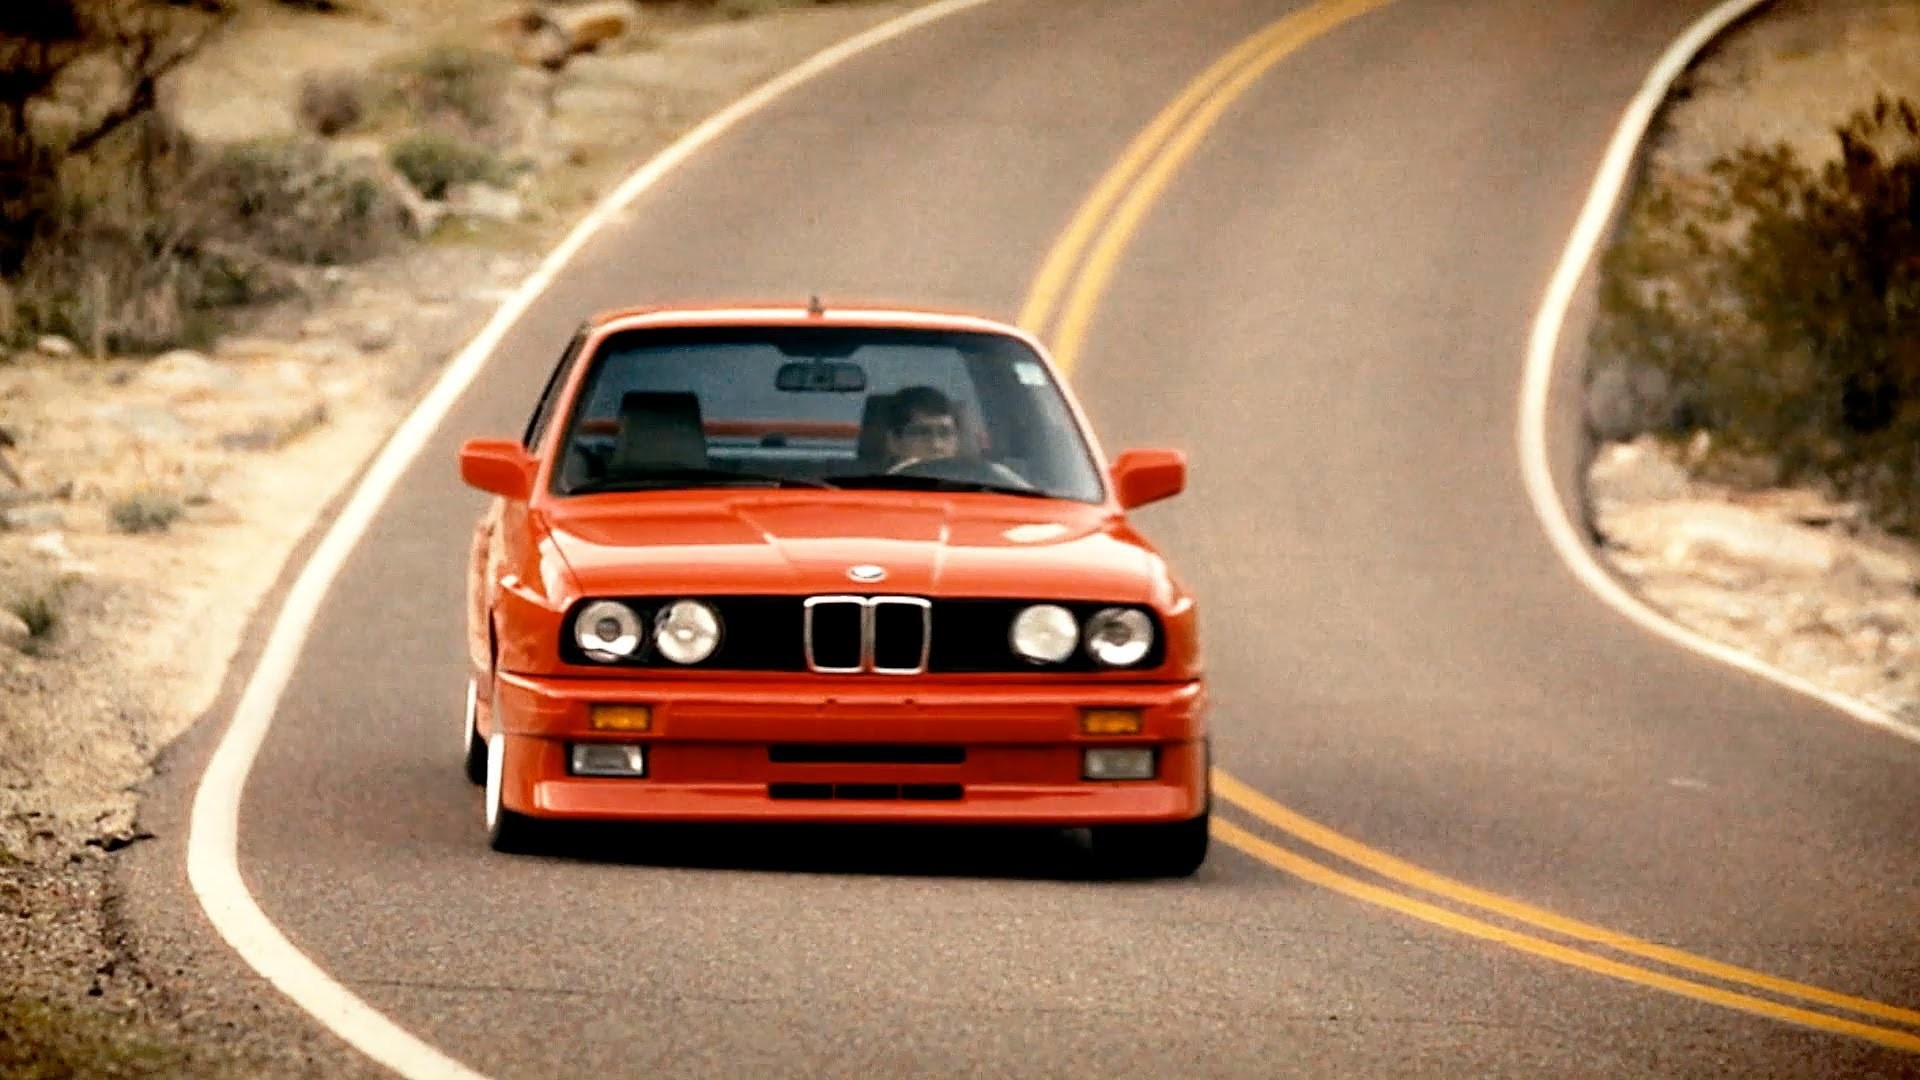 Bmw M3 E30 Wallpaper Hd Many Hd Wallpaper